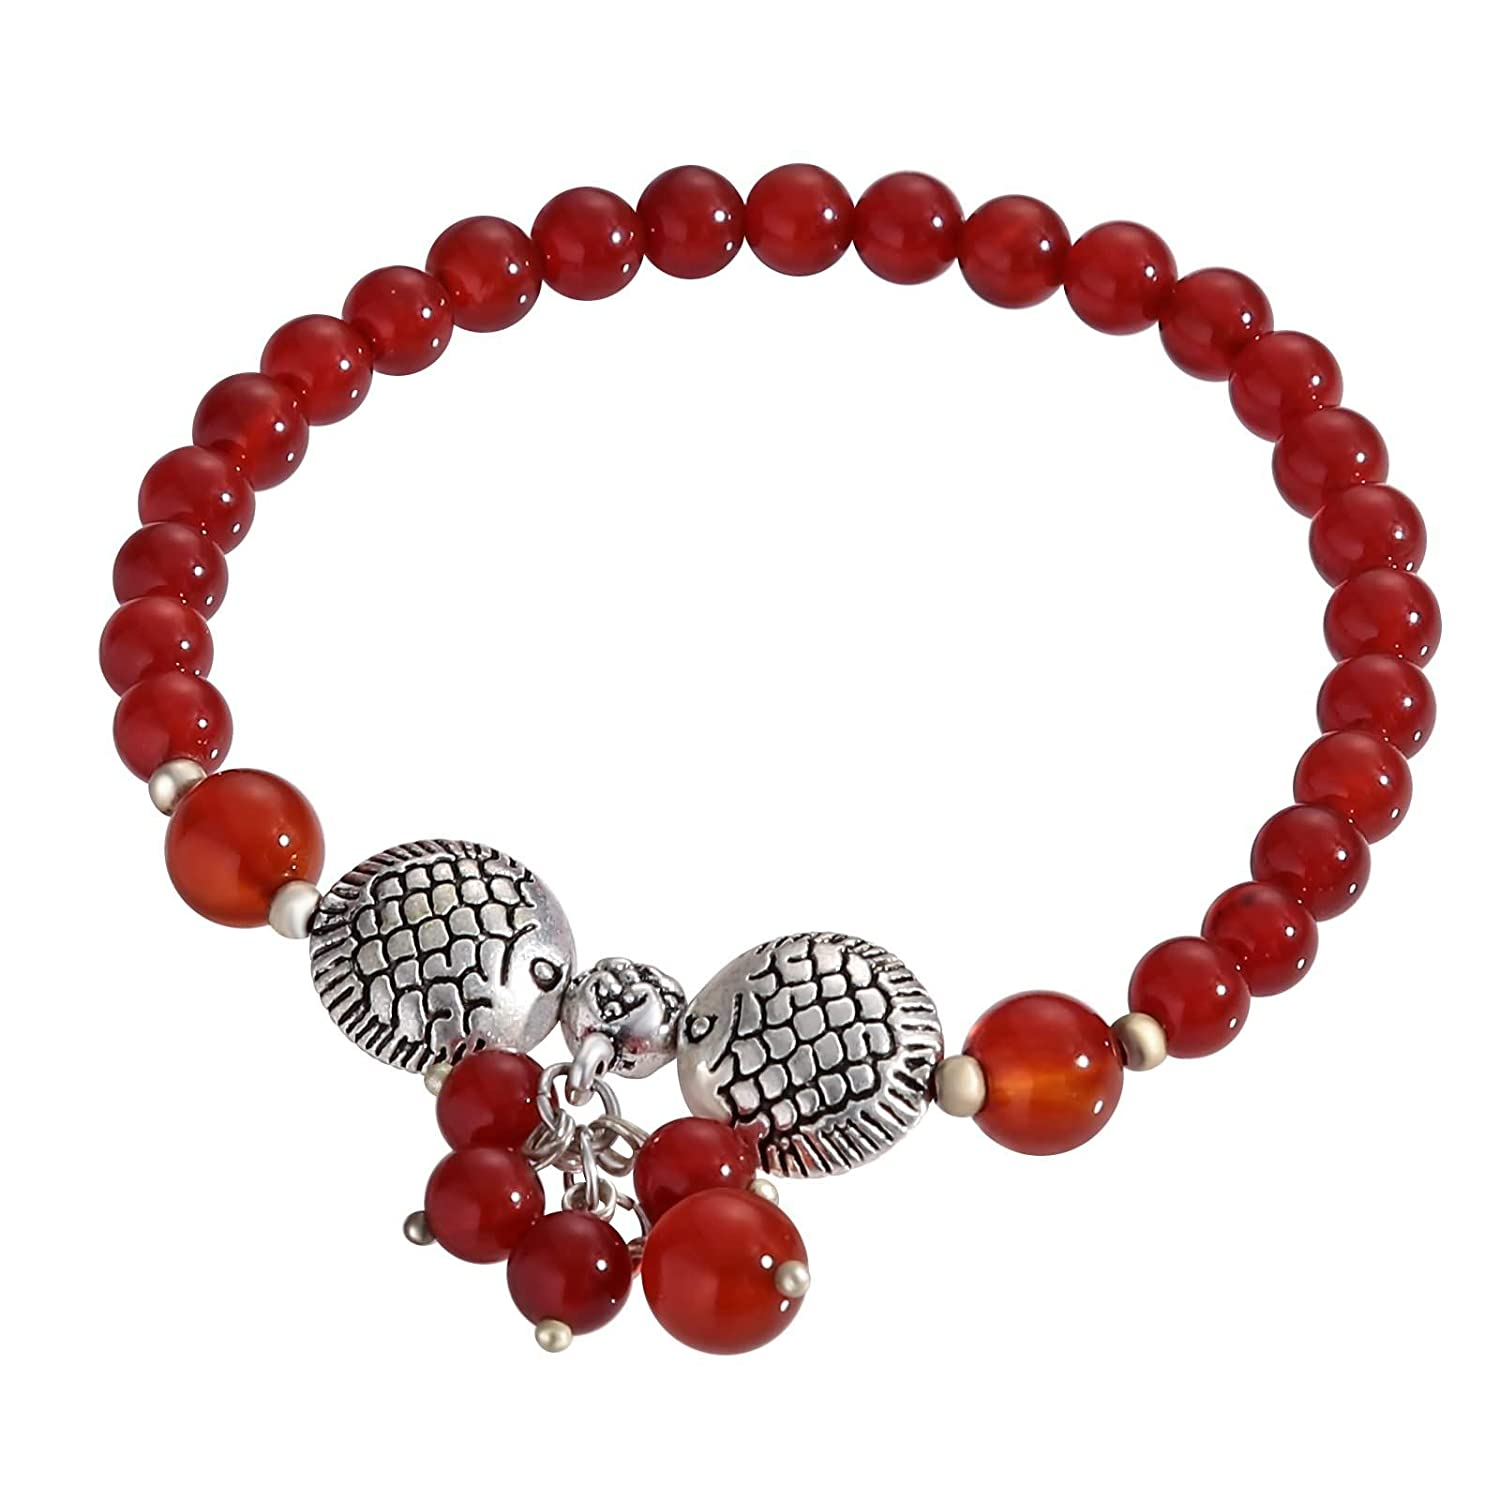 KnBoB Beaded Anklet Ankle Chain Red Beads with Fish Charms Beach Foot Chain Ankle Bracelet PJSCPXD2PMN156